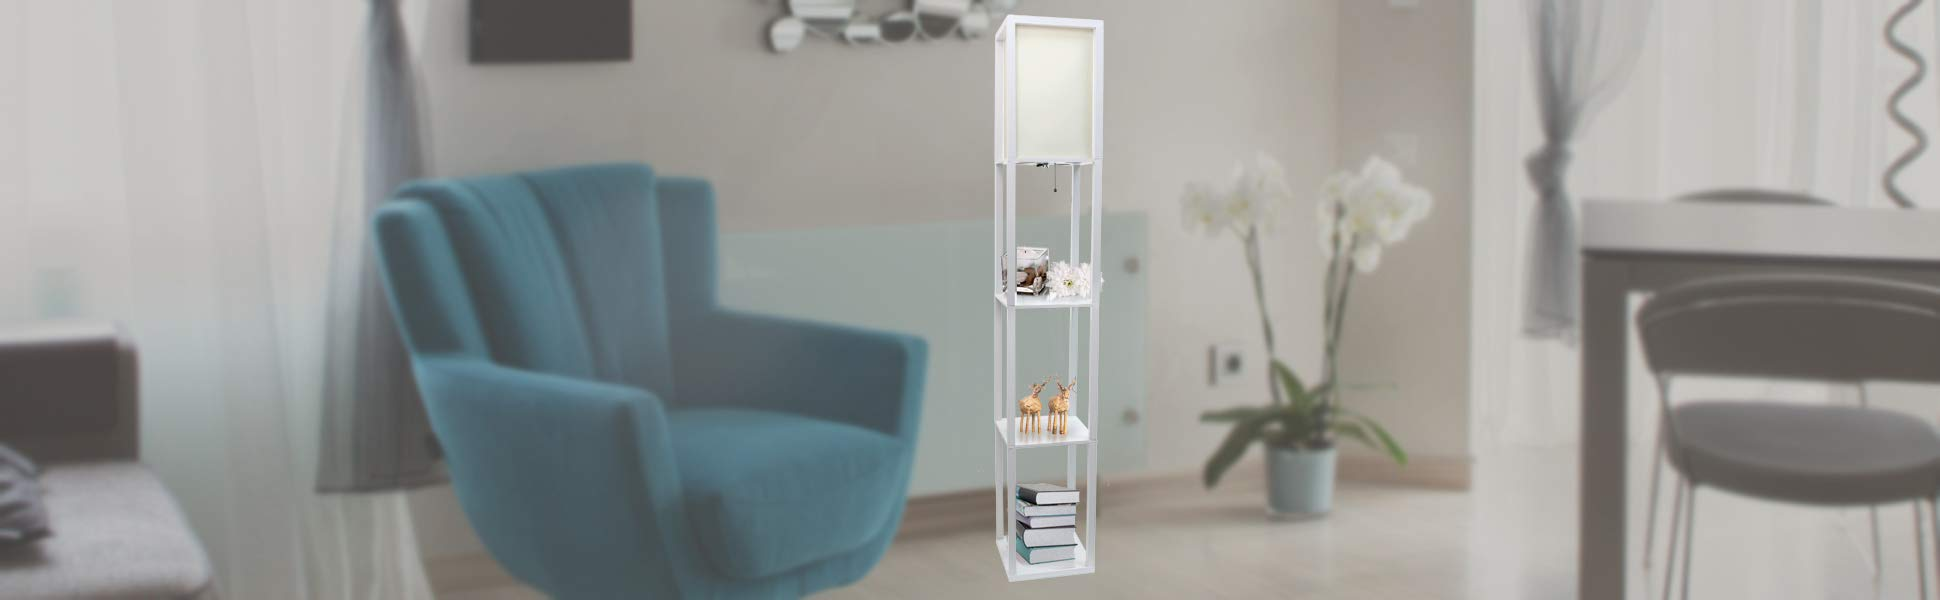 Simple Designs LF1014-WHT Floor Lamp Etagere Organizer Storage Shelf with Linen Shade, White by Simple Designs Home (Image #6)